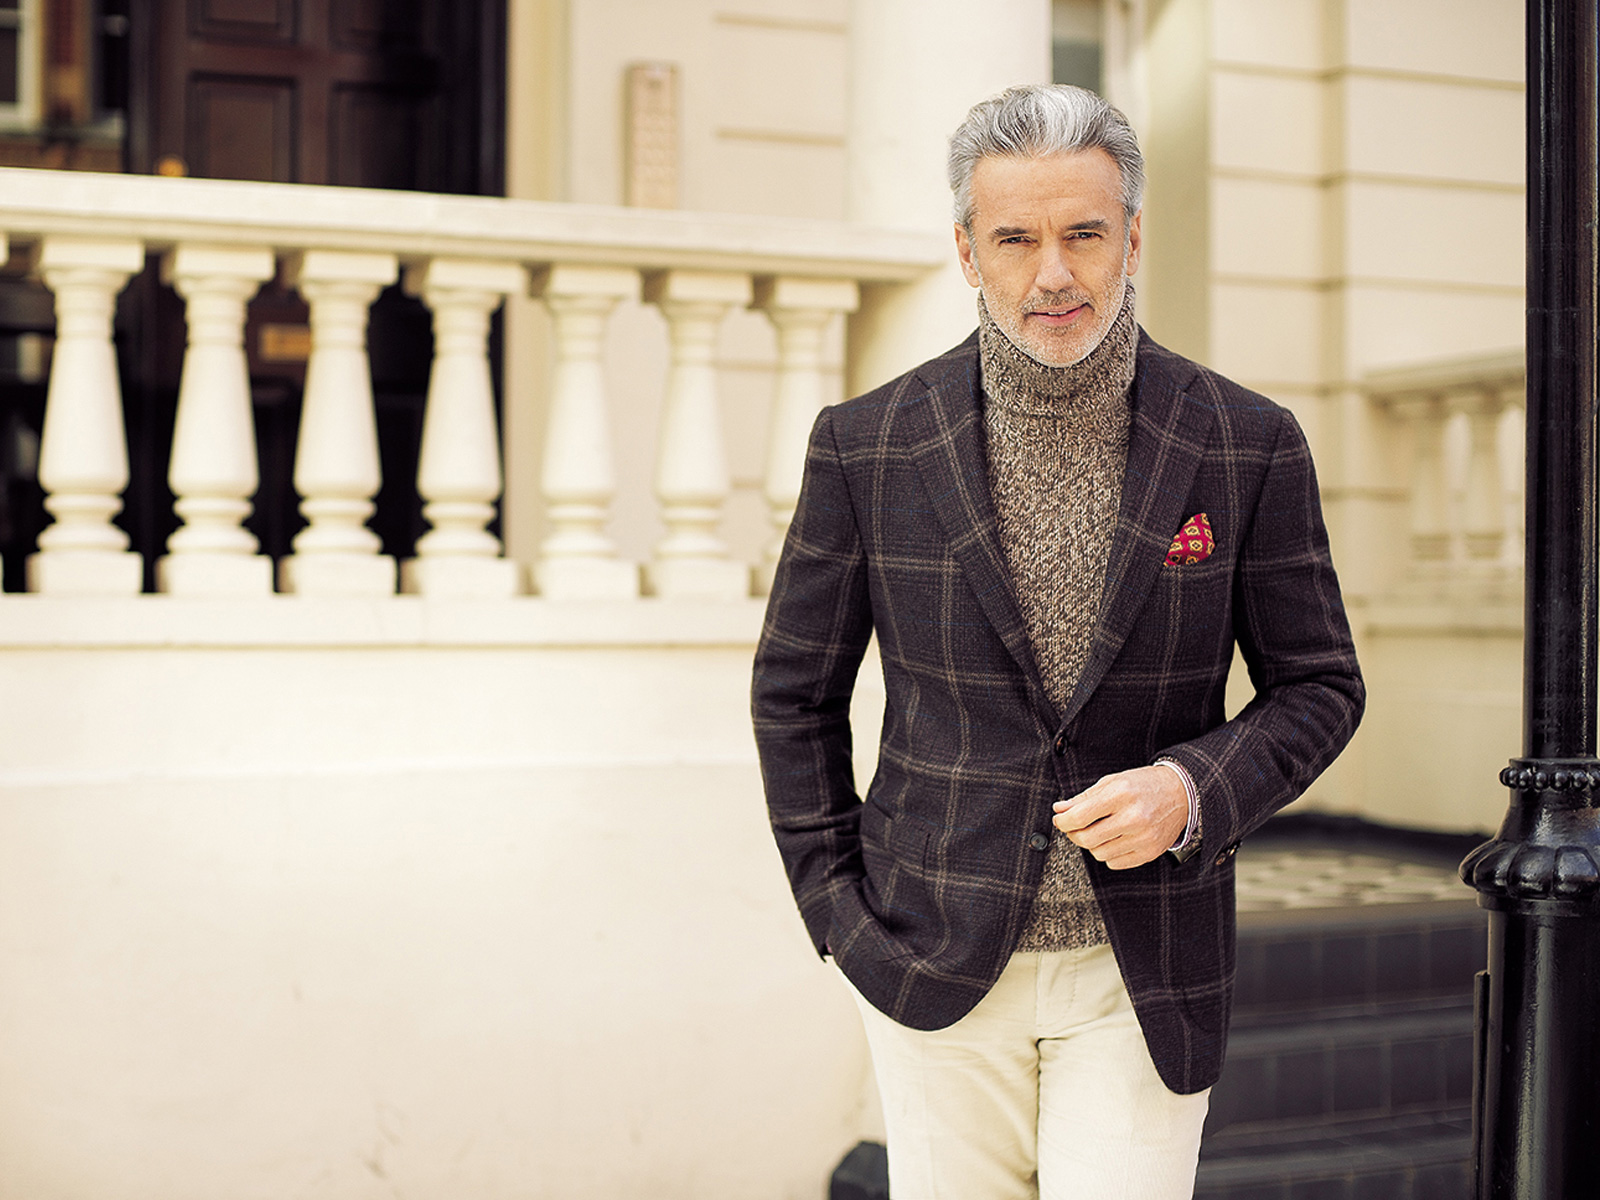 Suits, Sportcoats & Trousers